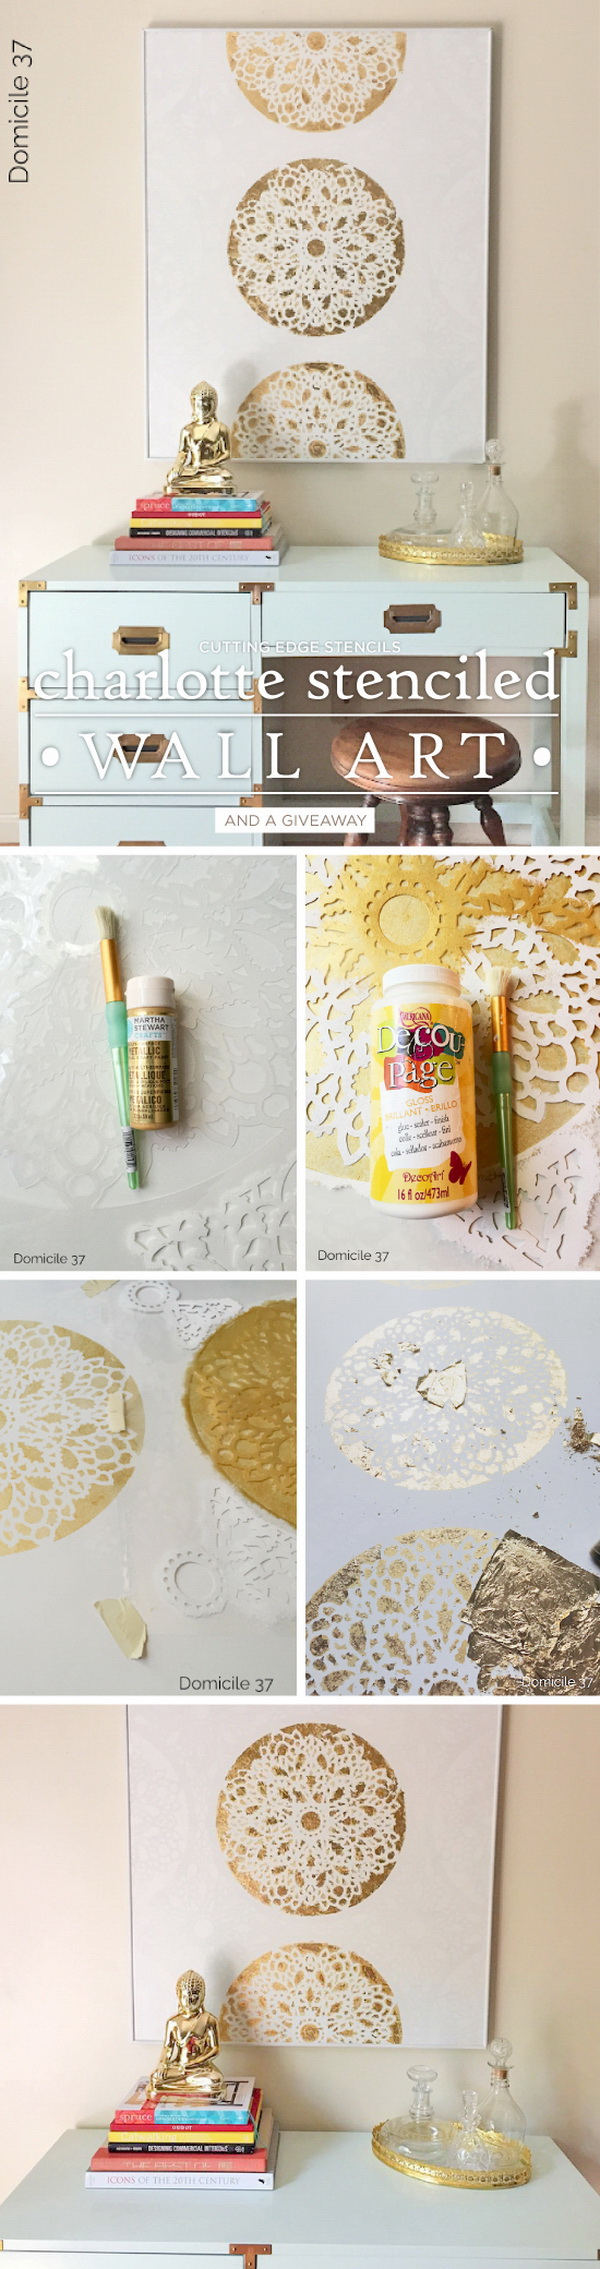 25 stunning diy wall art ideas tutorials for creative for Diy wall mural ideas